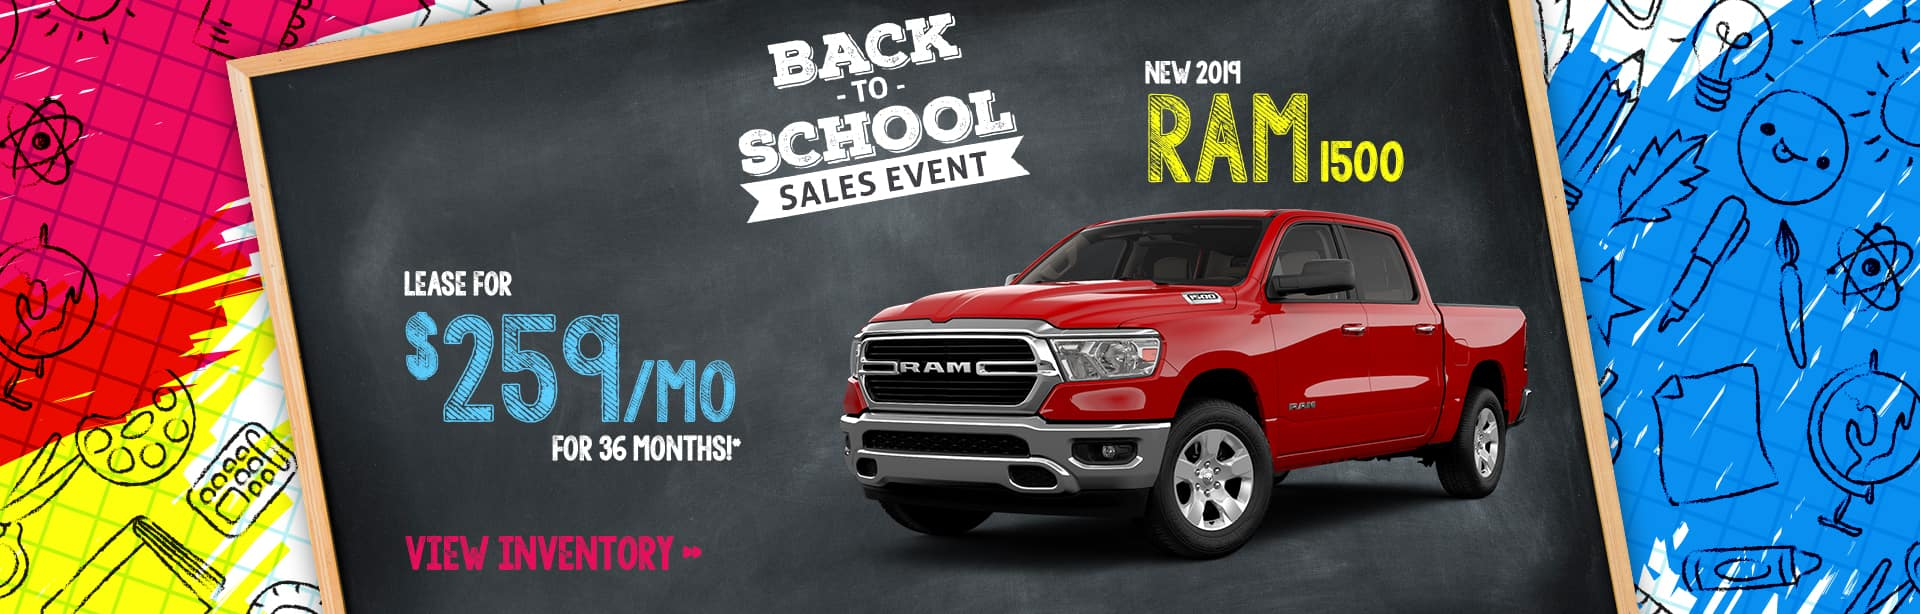 Lease Special on a New Ram 1500 near Greencastle, Indiana